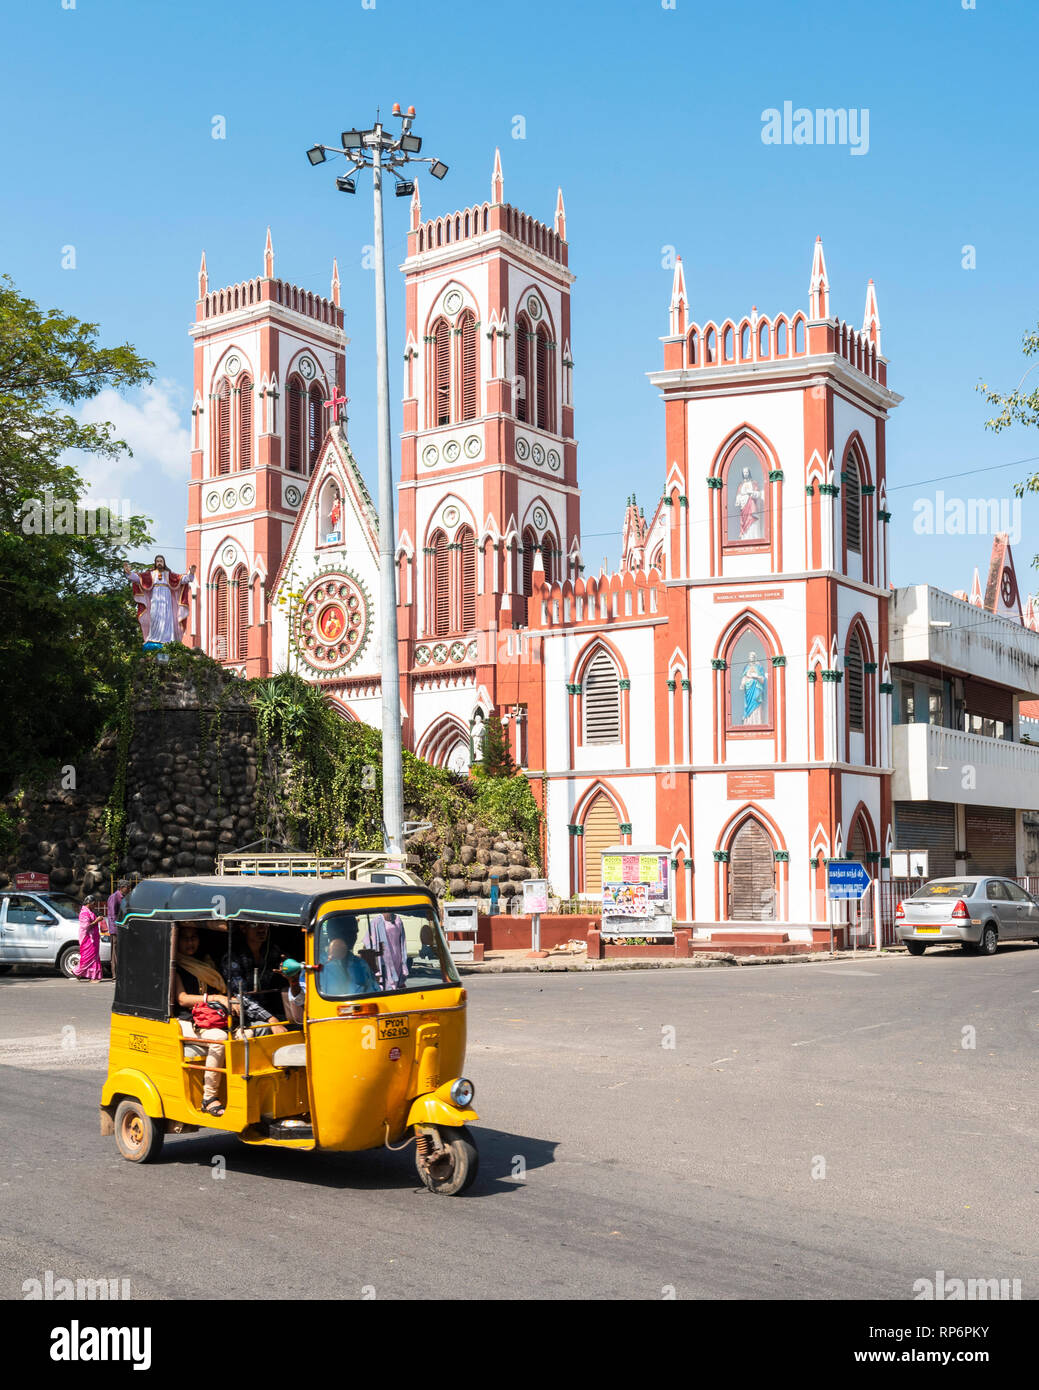 Pondicherry (or Puducherry), a French colonial settlement in India until 1954, is now a Union Territory town bounded by the southeastern Tamil Nadu st - Stock Image